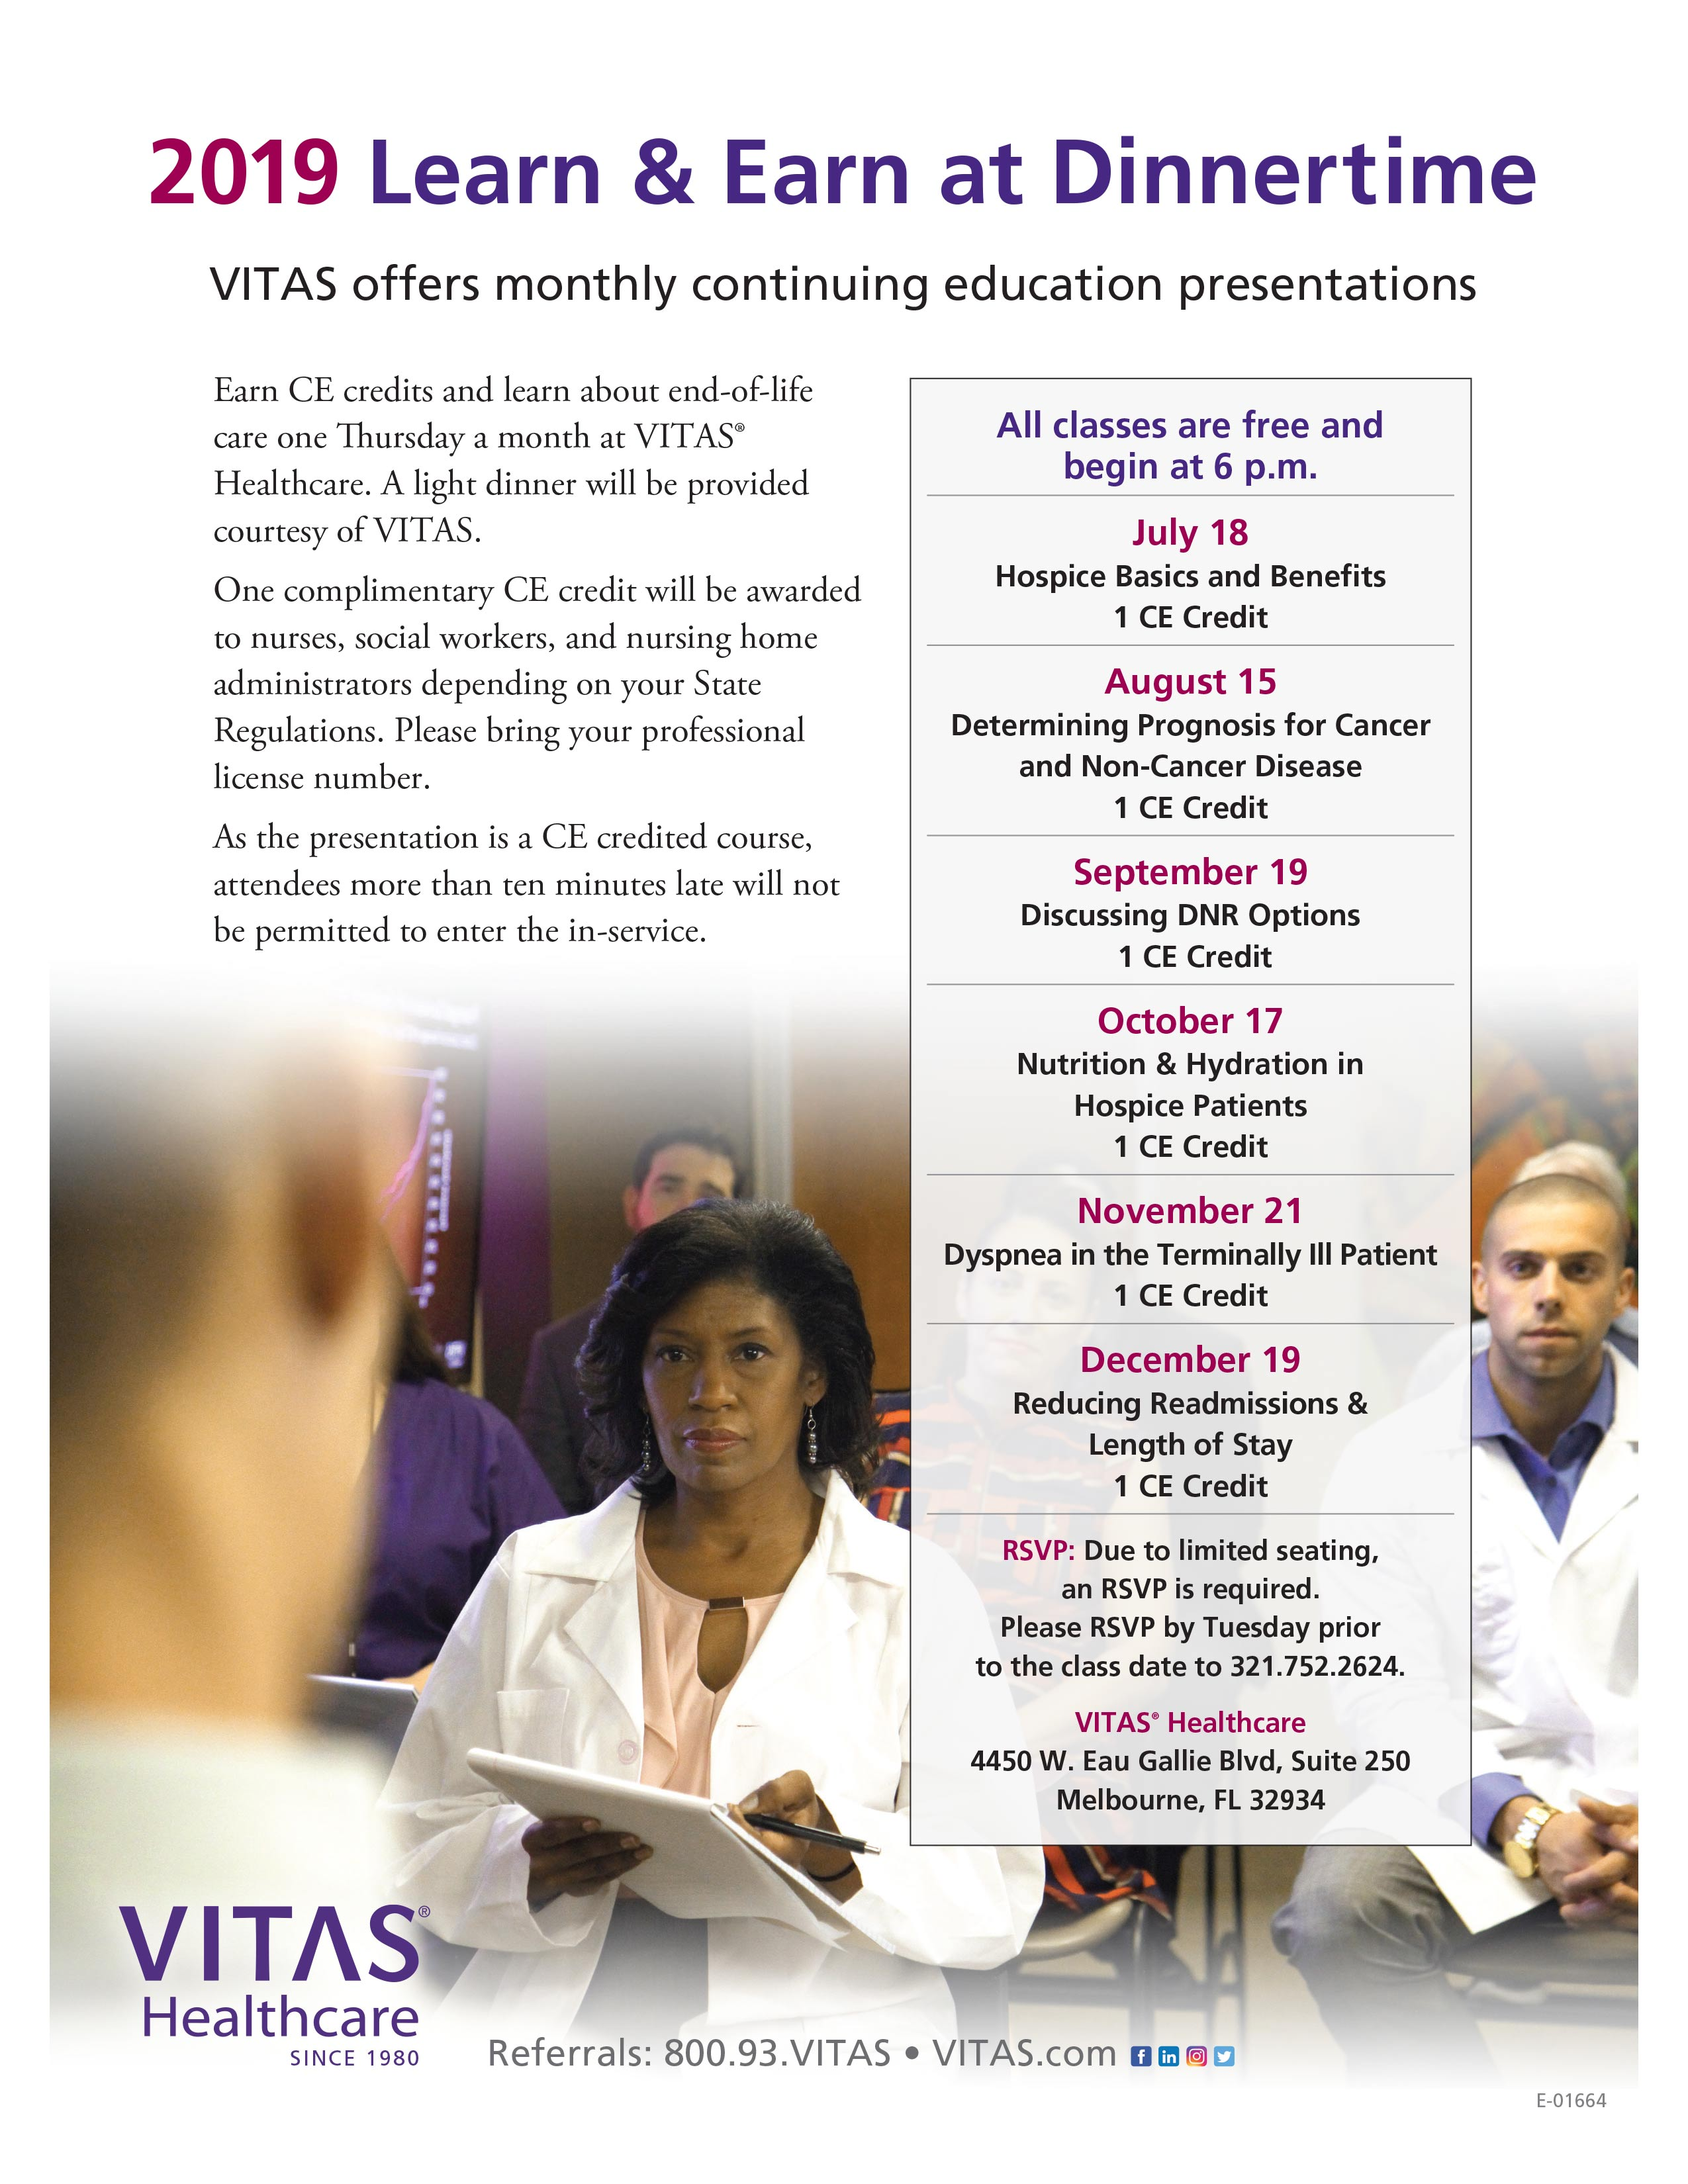 2019 Learn & Earn at Dinnertime offered by VITAS Healthcare